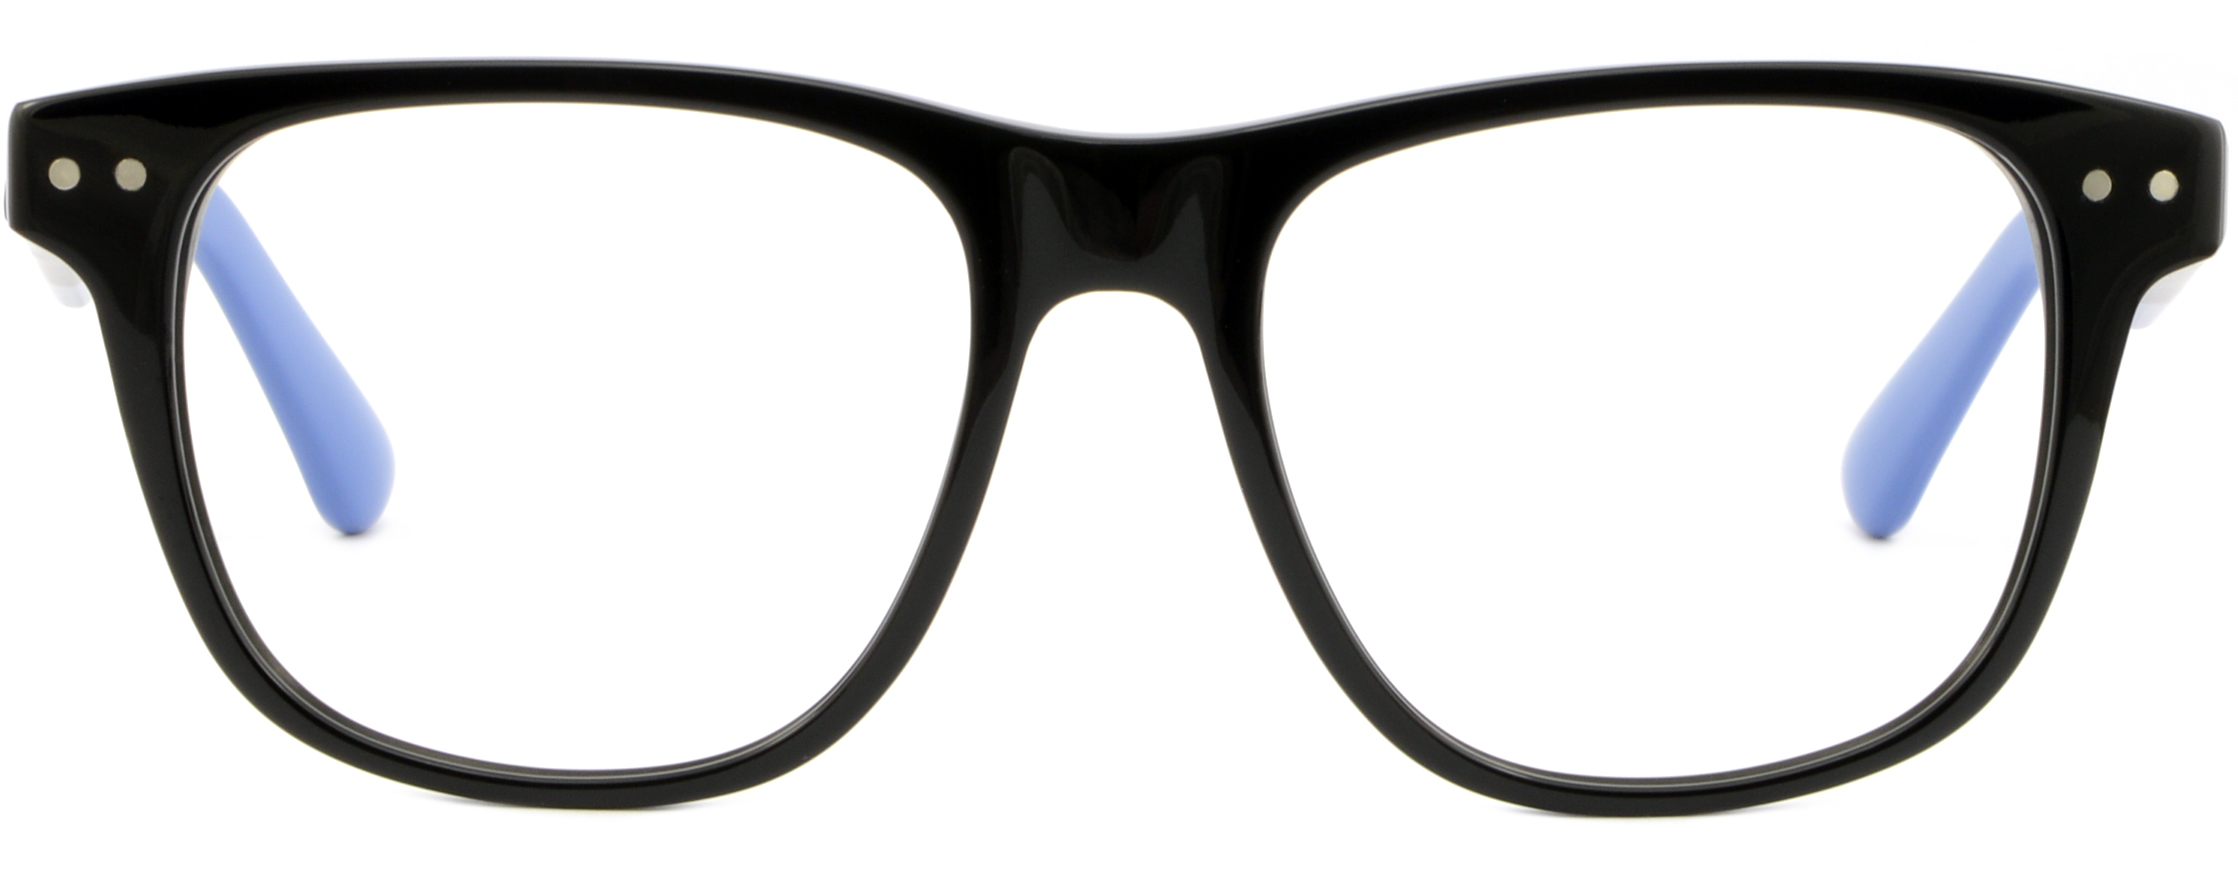 262681f4444 Oversized Black Square Mens Plastic Frame Wide Glasses Silver Dots ...